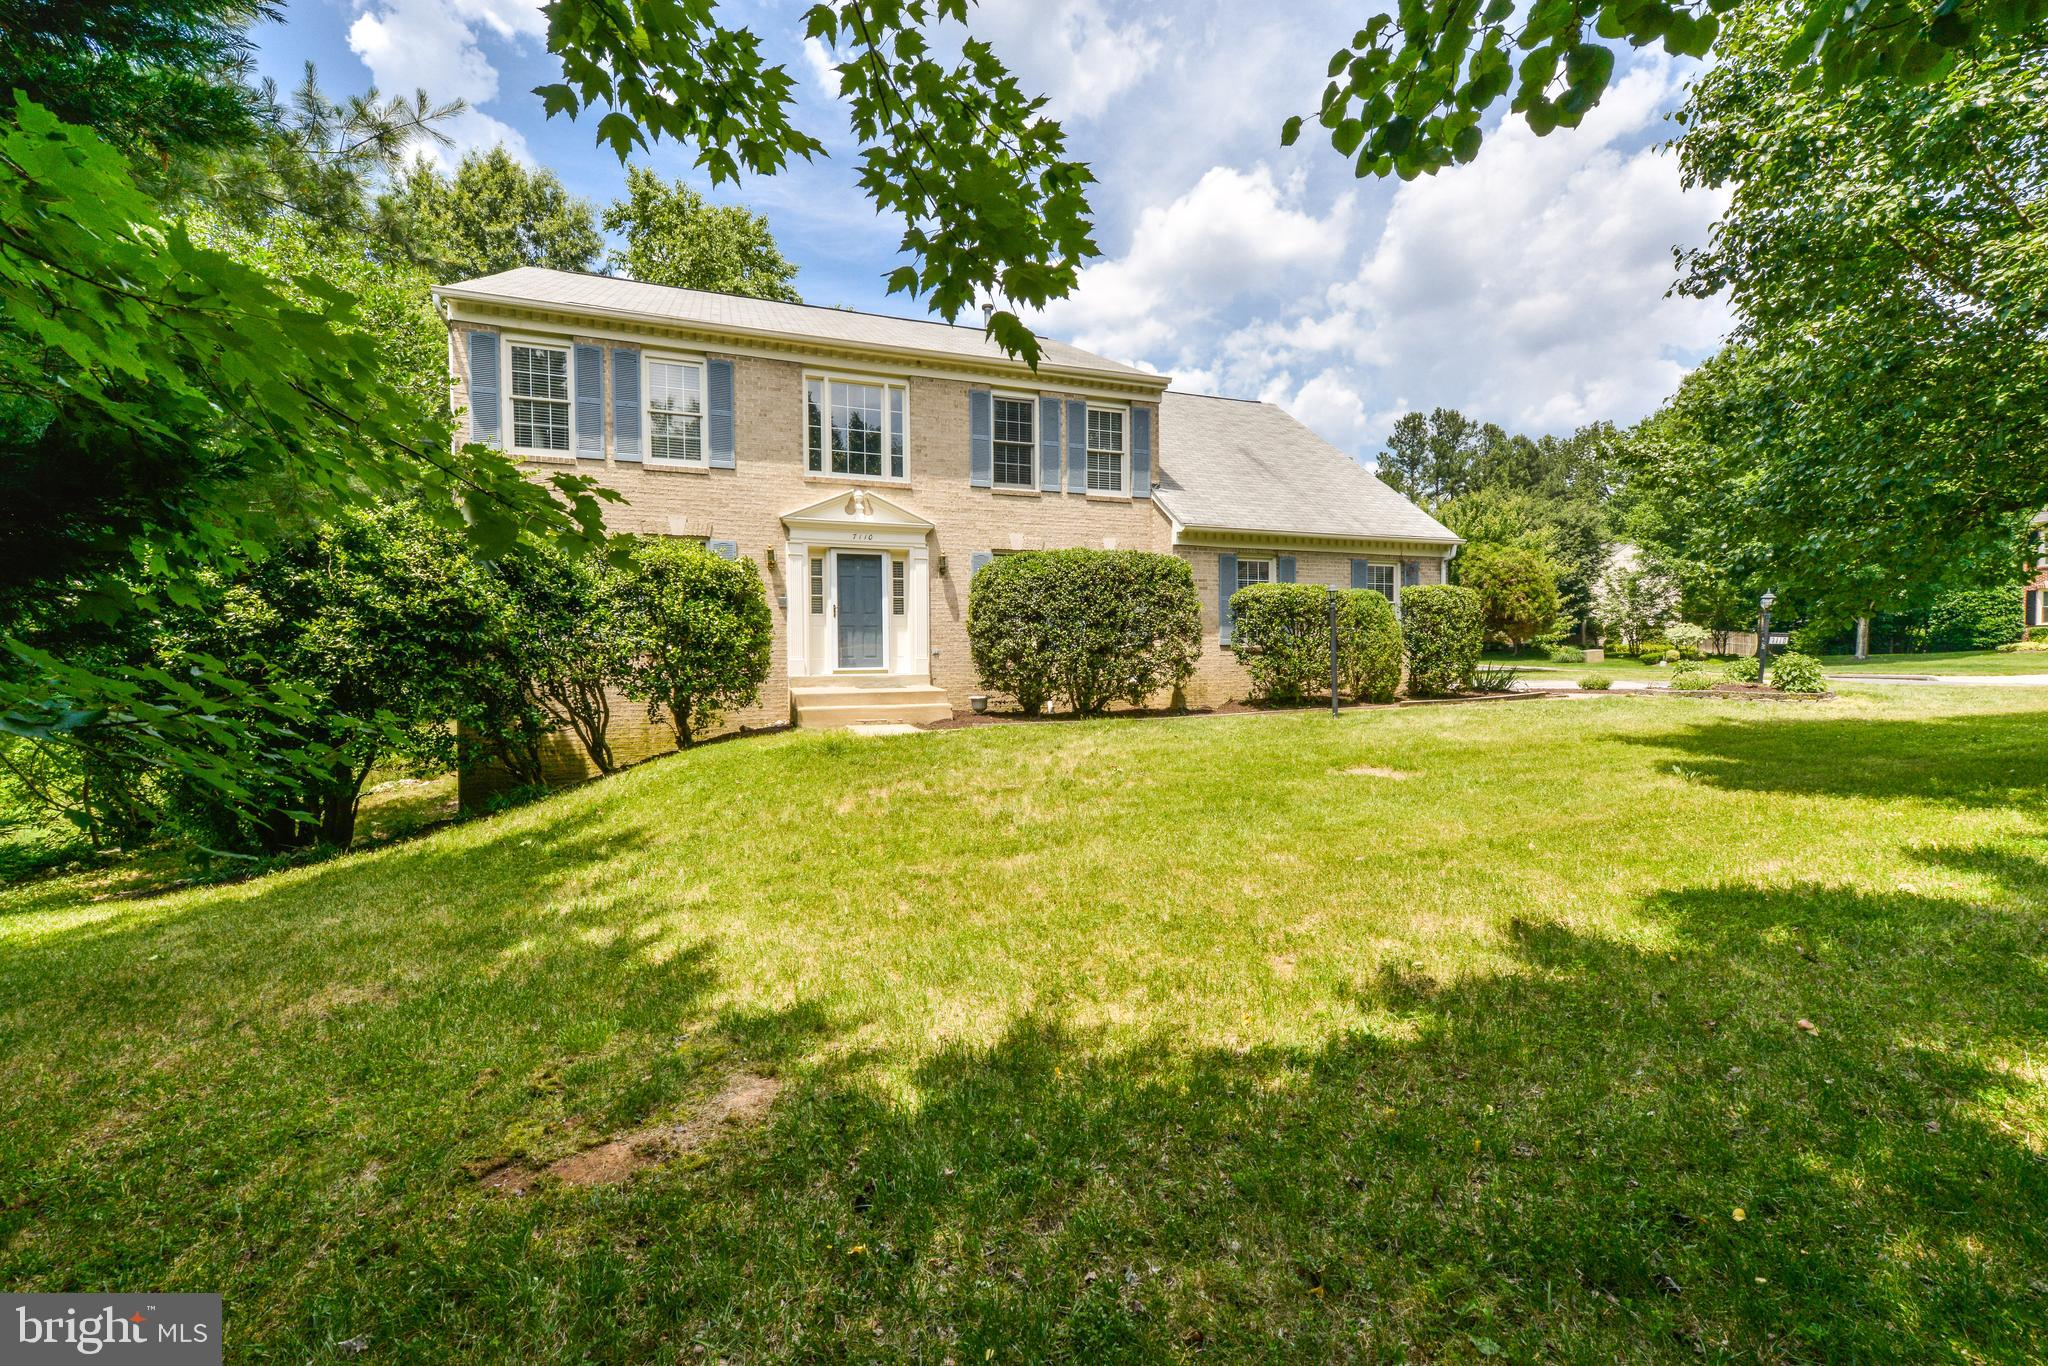 Get ready to be impressed! From the moment you pull into the driveway of this beautifully updated colonial Home.  Lovely details throughout the home include hardwood floors through the house except for the basement.  The beautiful kitchen features a center island, beautiful granite counters, and new SS appliances. The family room off the kitchen has a cozy gas fireplace & light-filled atmosphere. Master suite features an updated bath with dual vanity & ceramic tile shower.  Another great place to hang out is the finished walk-out basement with huge family entertainment space and 1 bedroom and Den with a full bath.  Relax & enjoy the outdoor space of a huge deck and mature natural trees.